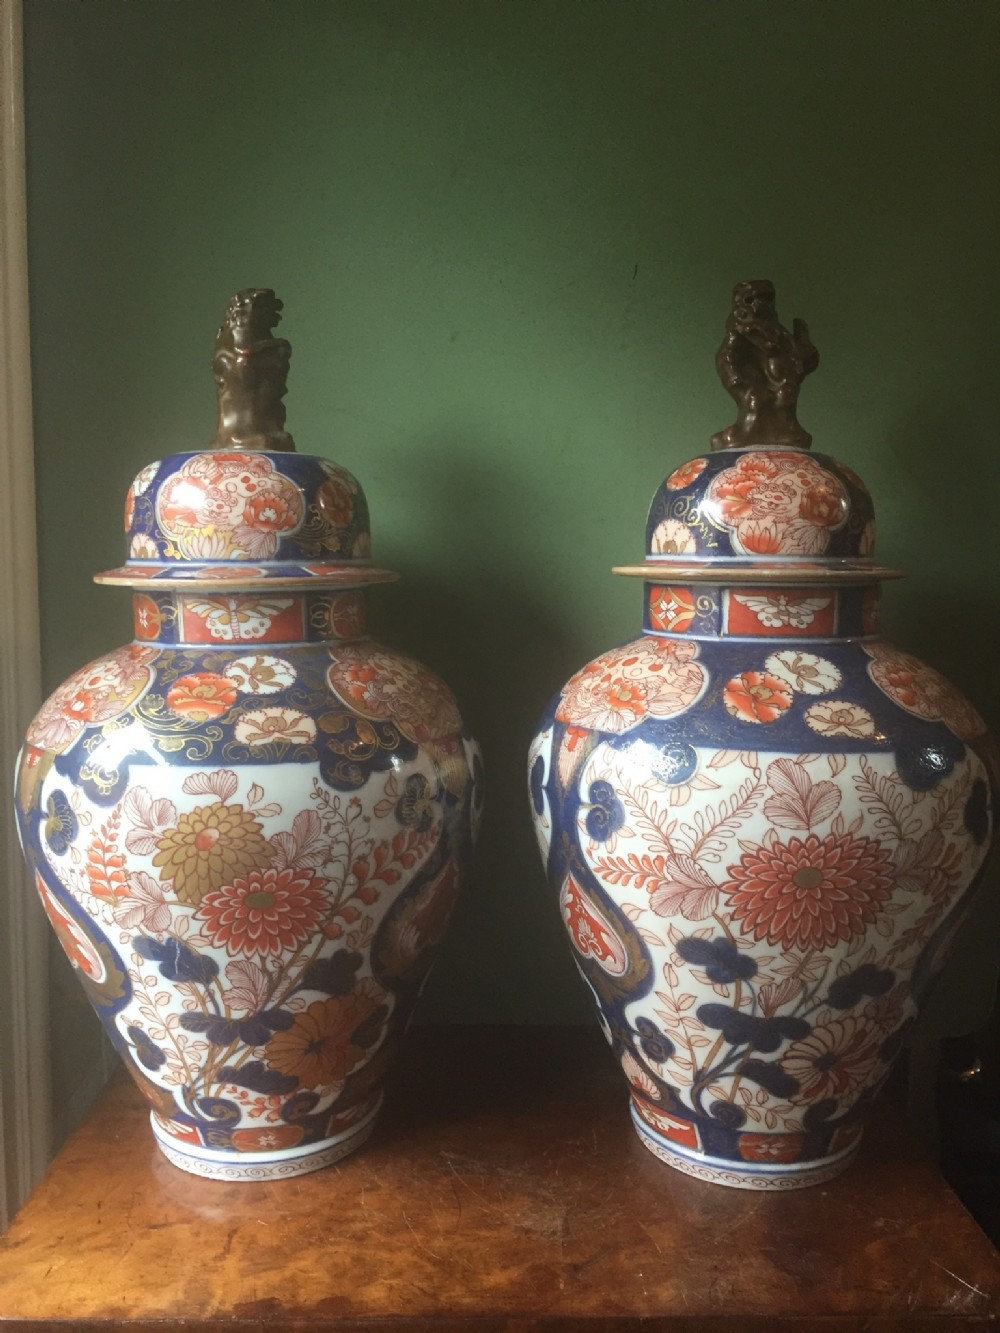 fine pair of c18th japanese imari pattern porcelain vases and covers